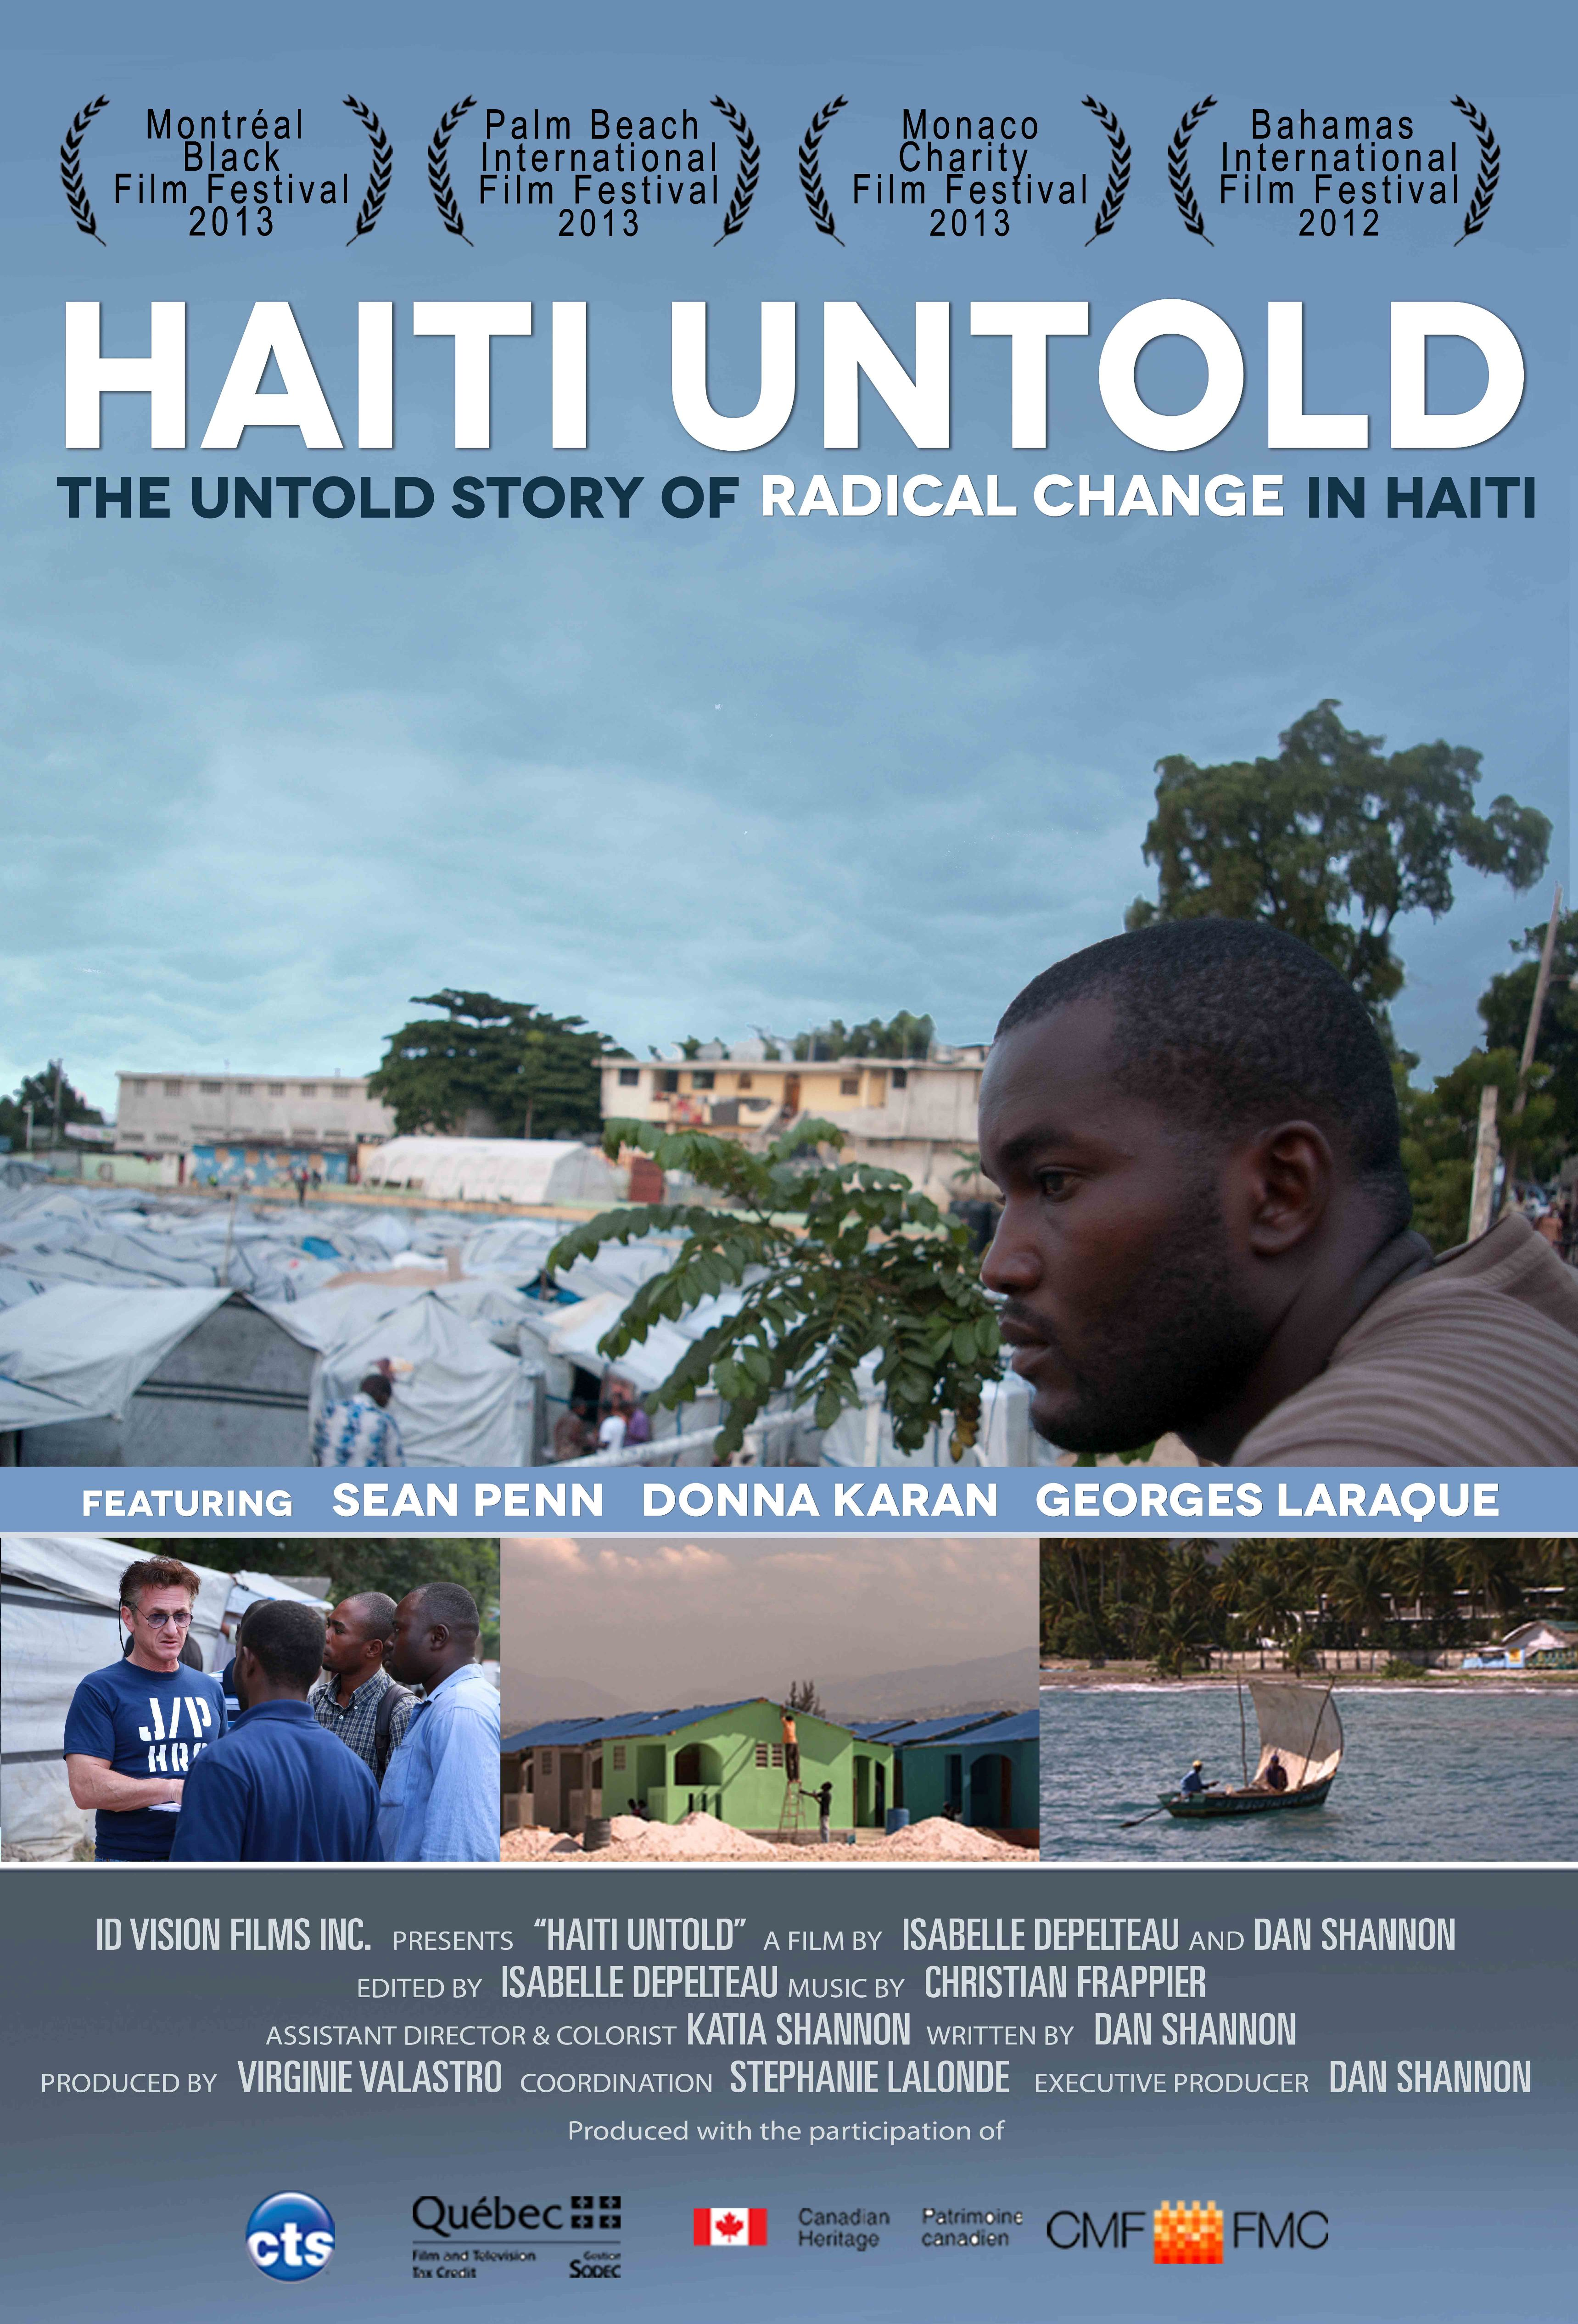 Haiti Untold documentary